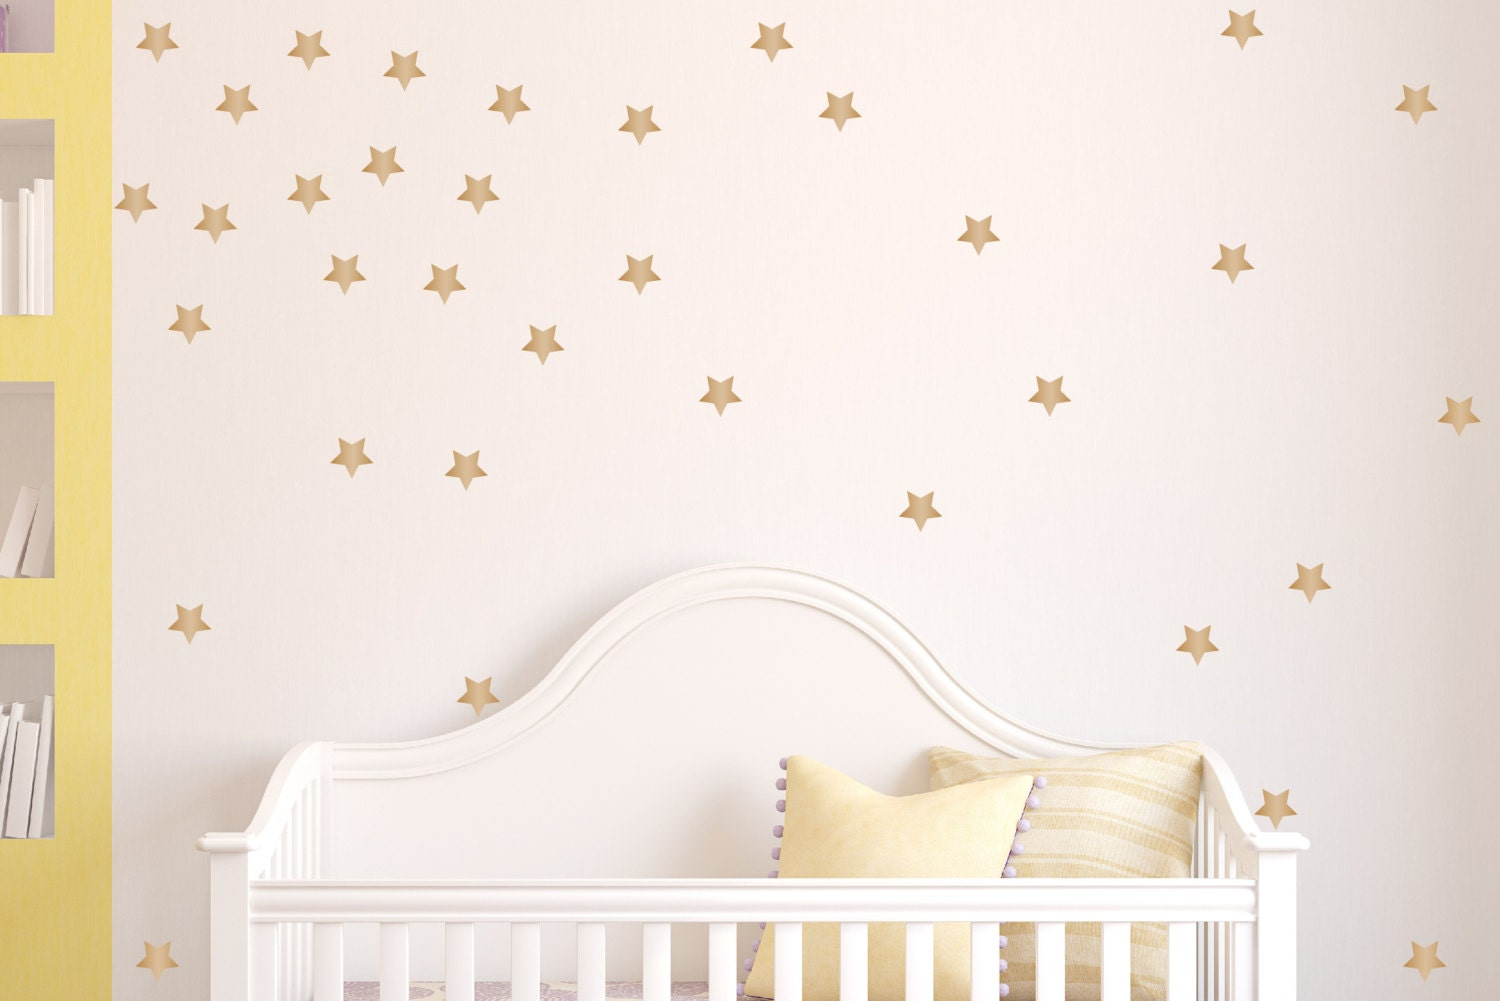 Star Decals Peel And Stick Removable Wallpaper Wall Decals